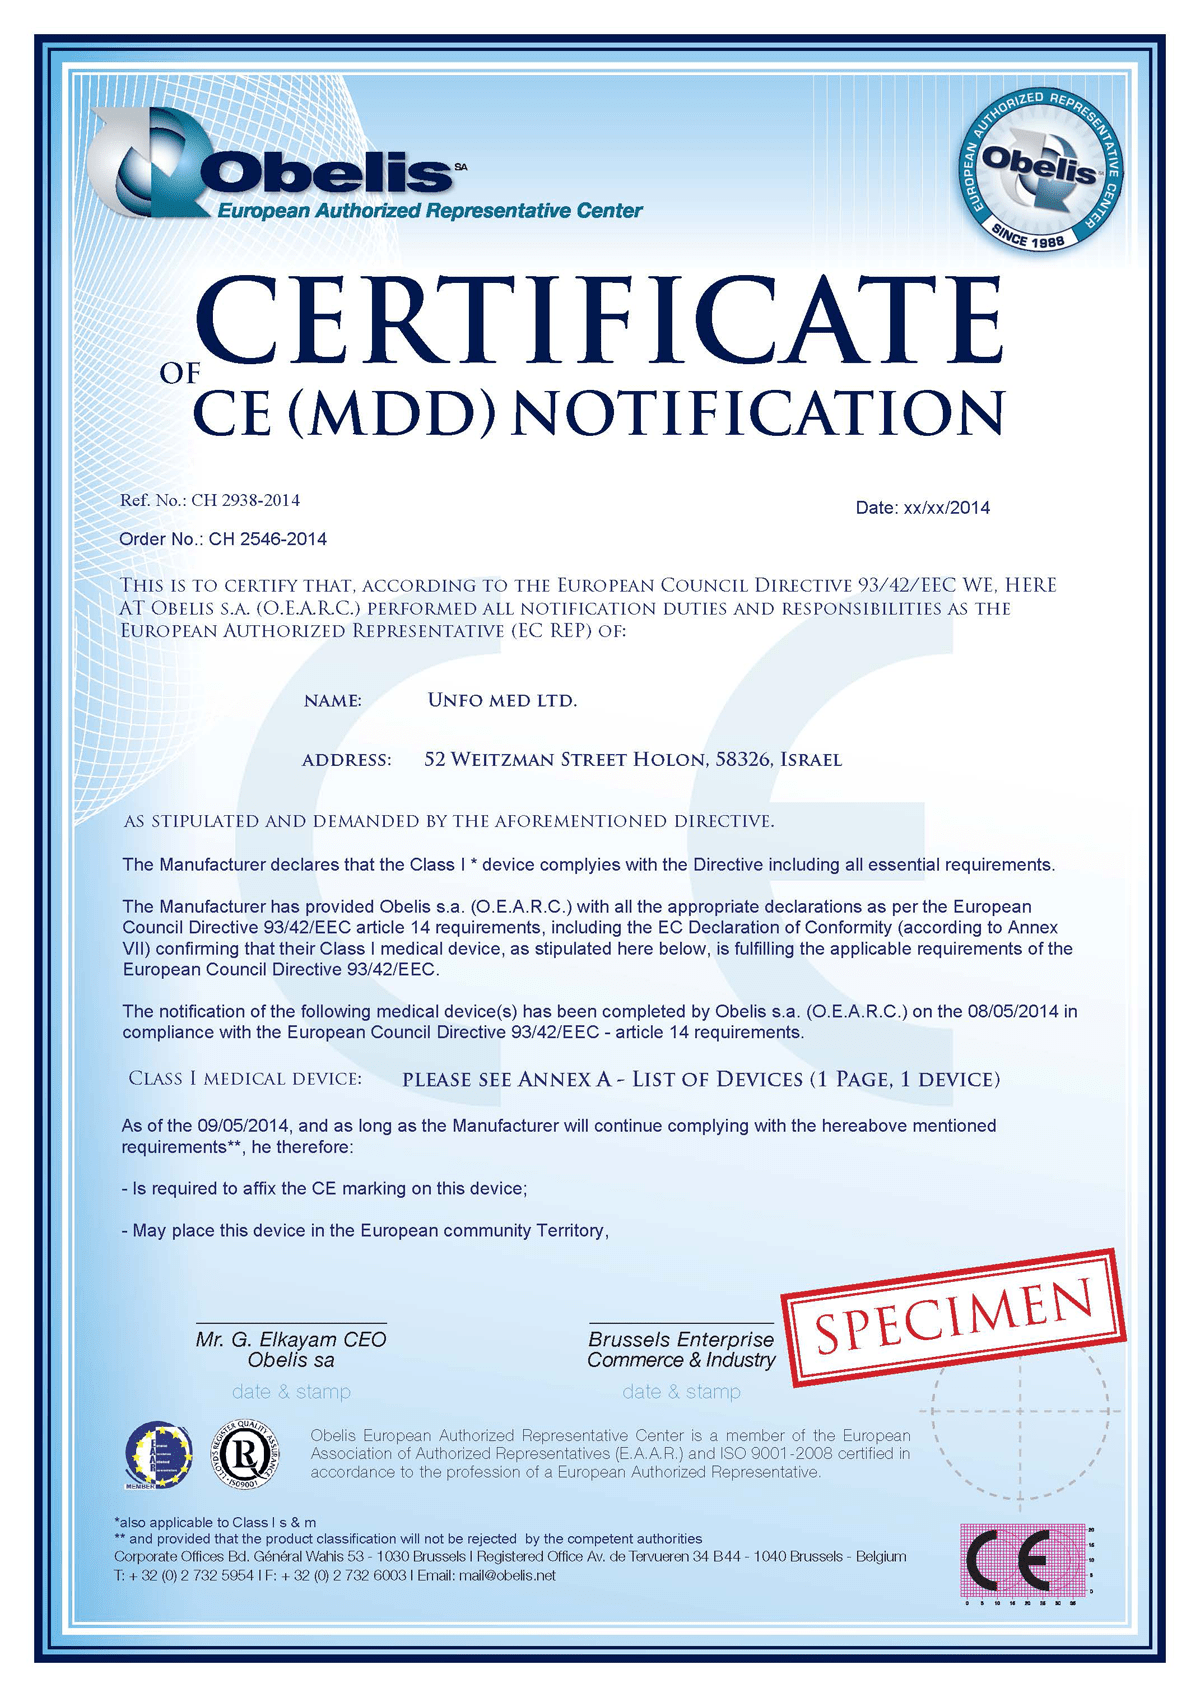 UNFO Certificate of CE Notification